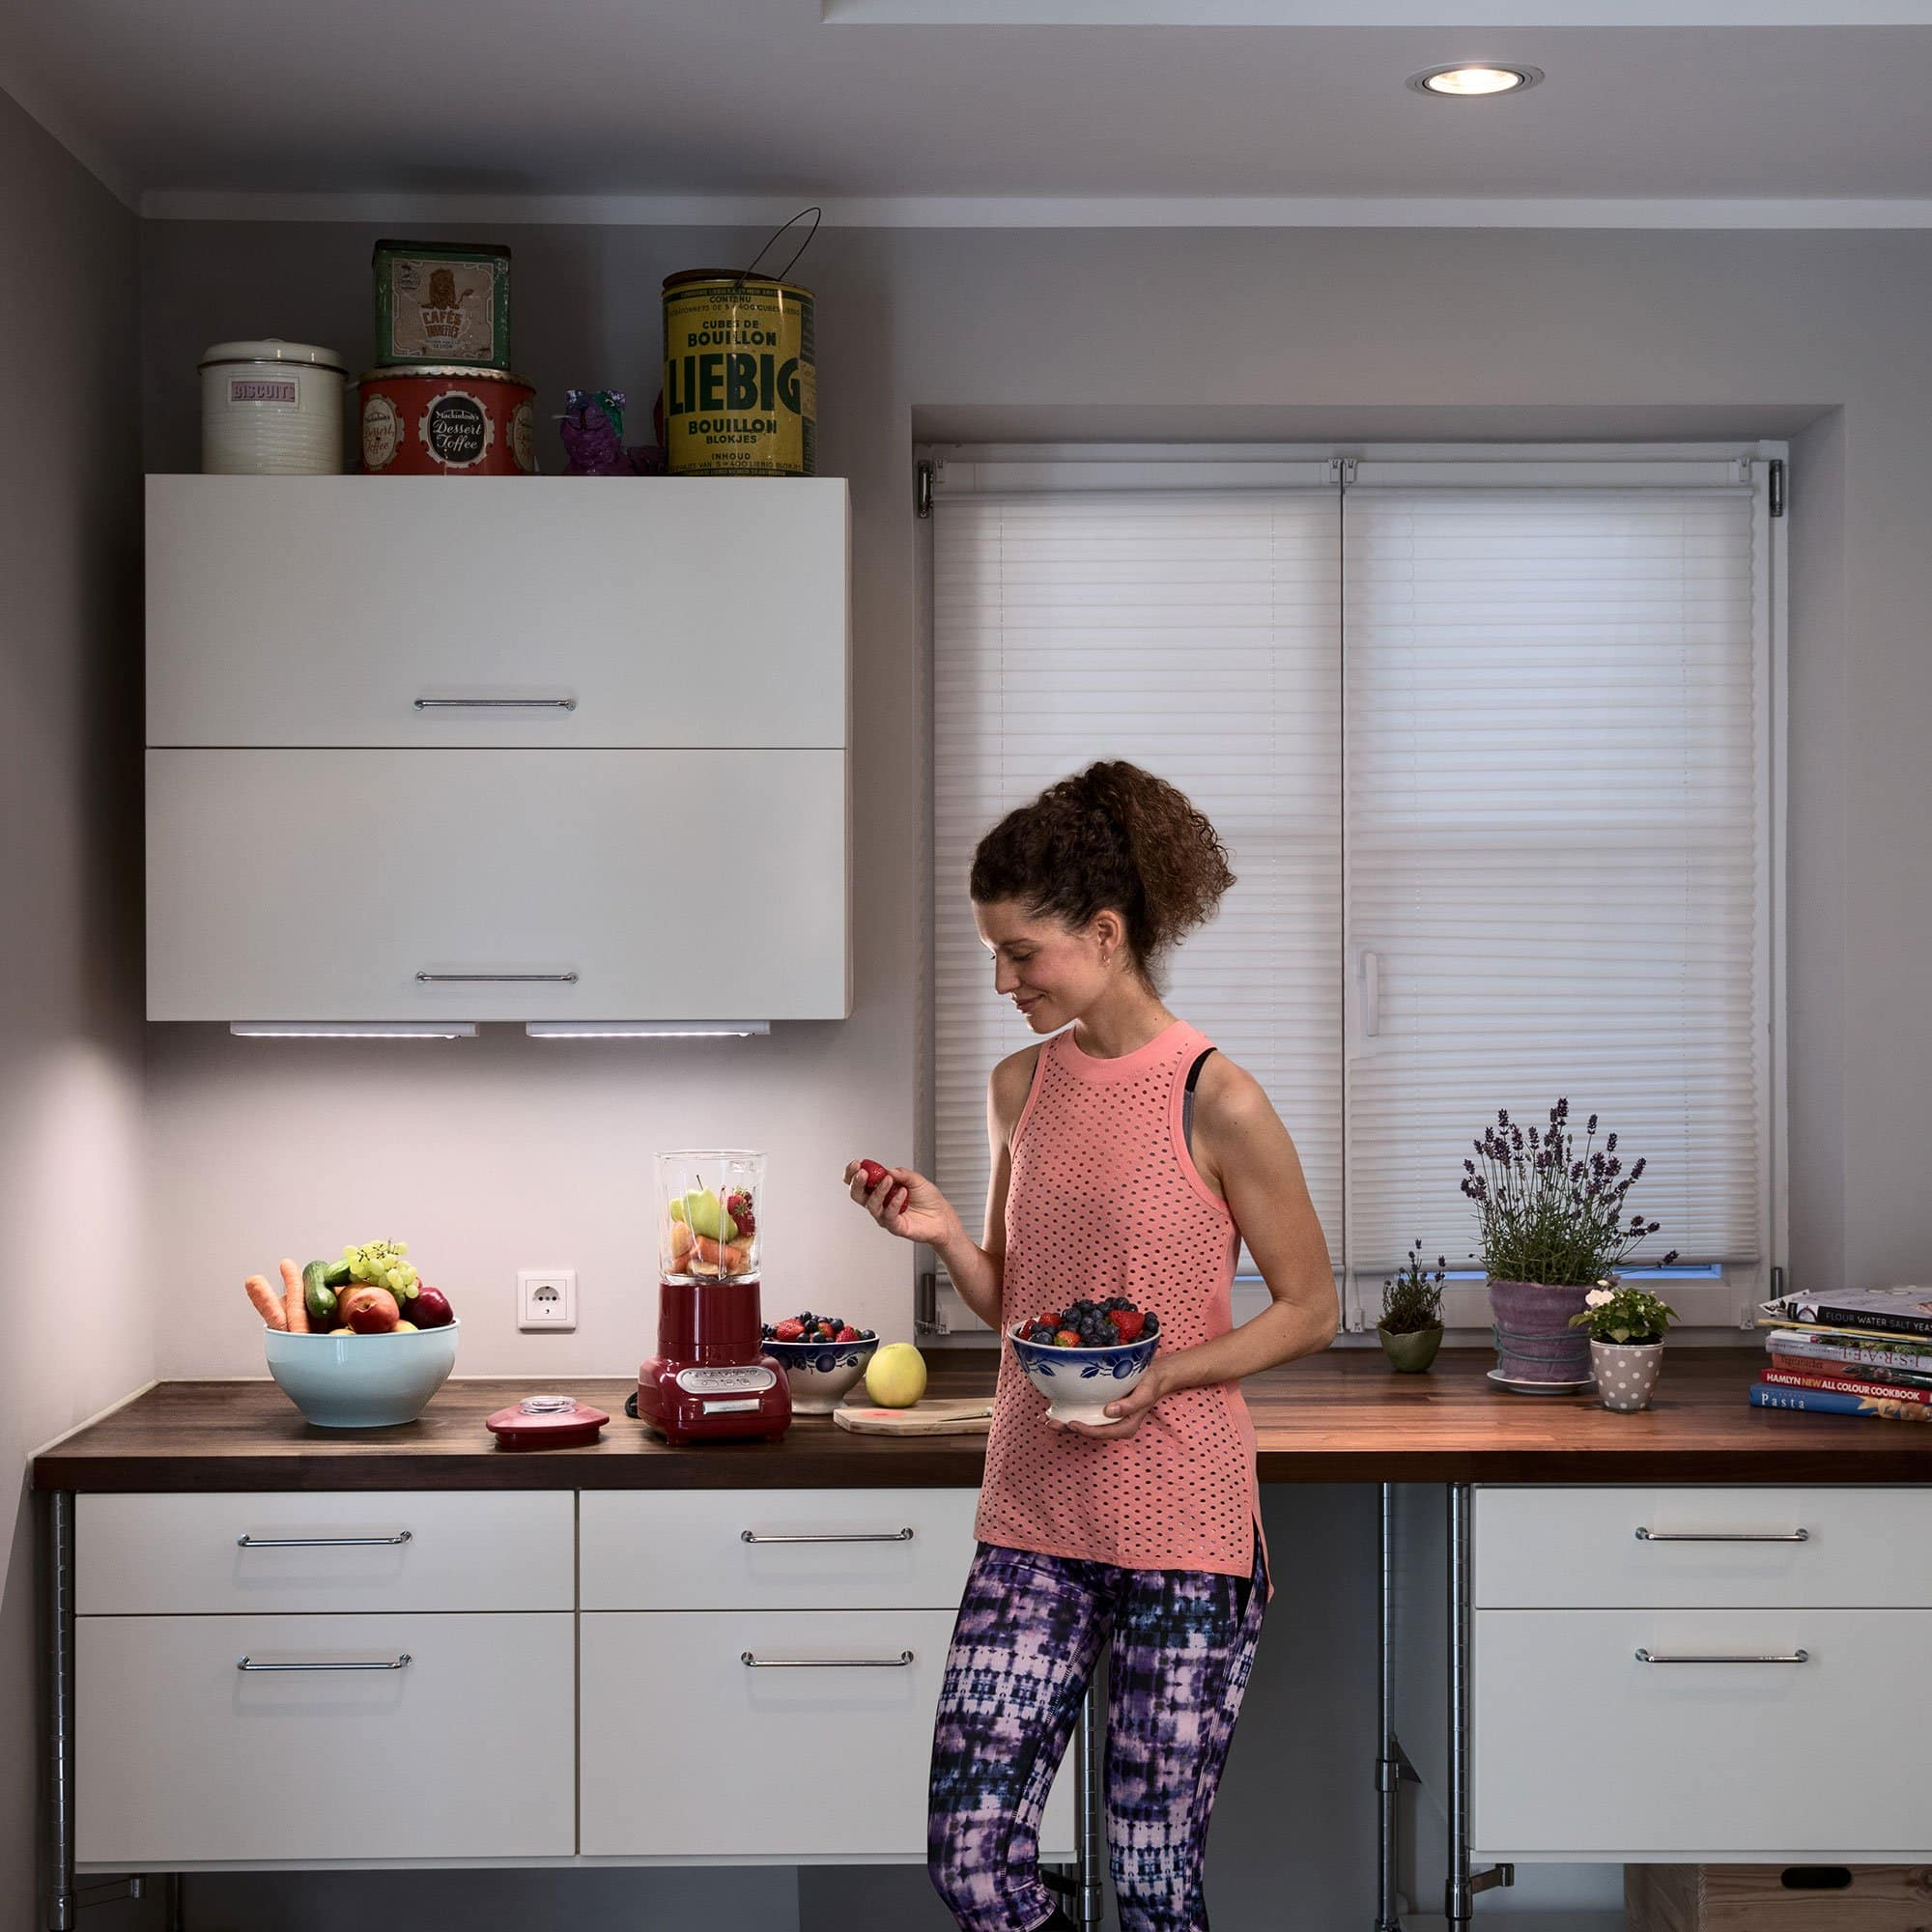 6-Pack Sylvania Lightify LED Smart Connection Light Gateway and A19 Bulb Kit $22.99 + FS